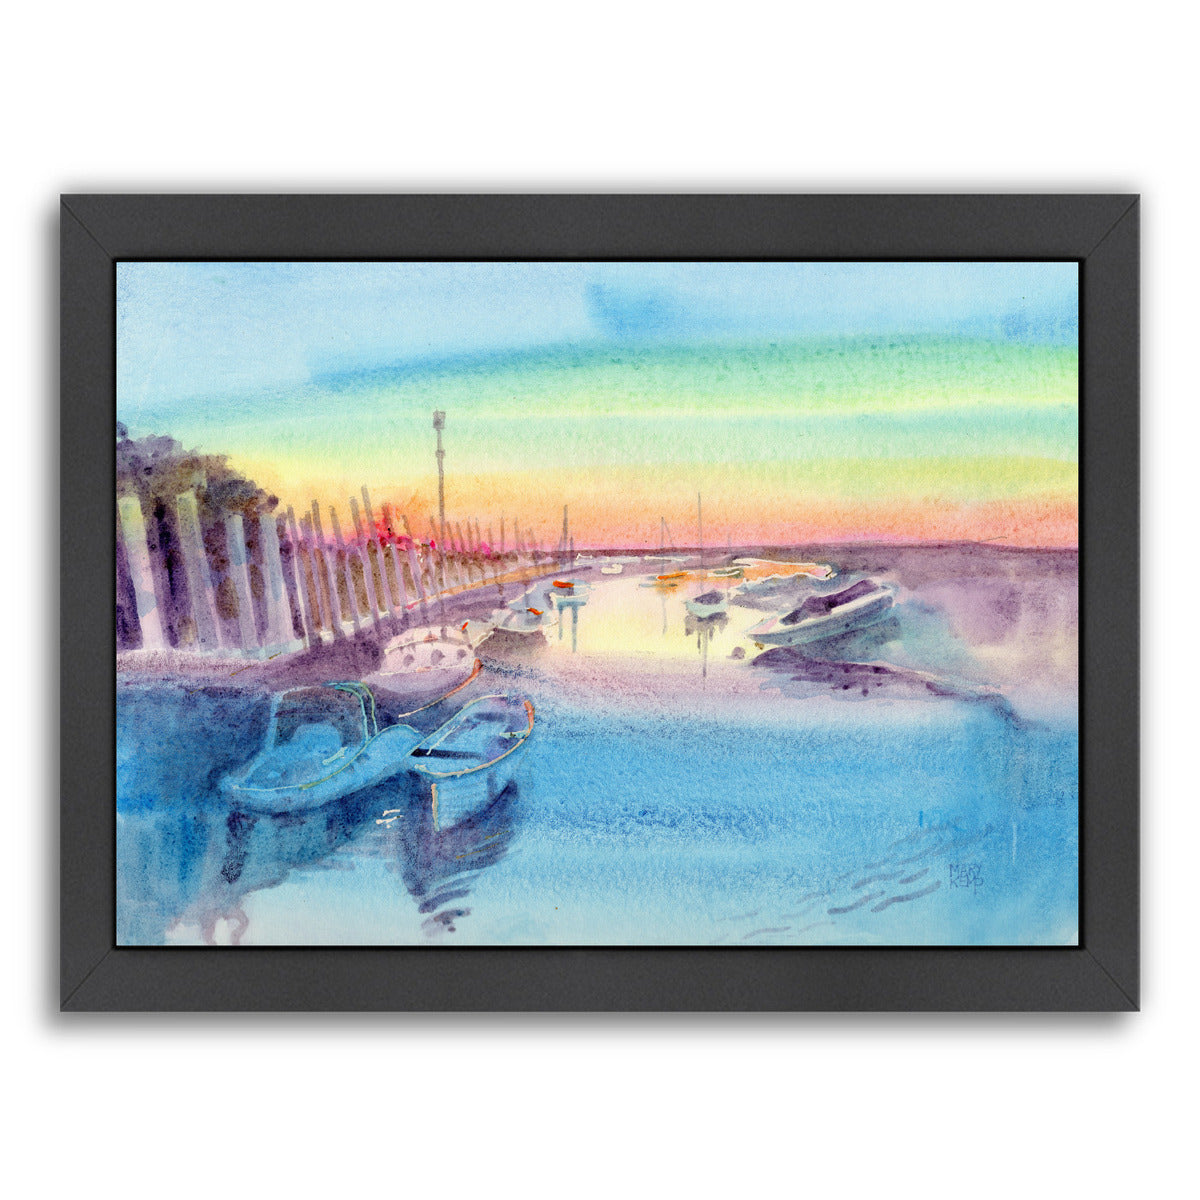 Evening Harbour By Mary Kemp - Black Framed Print - Wall Art - Americanflat